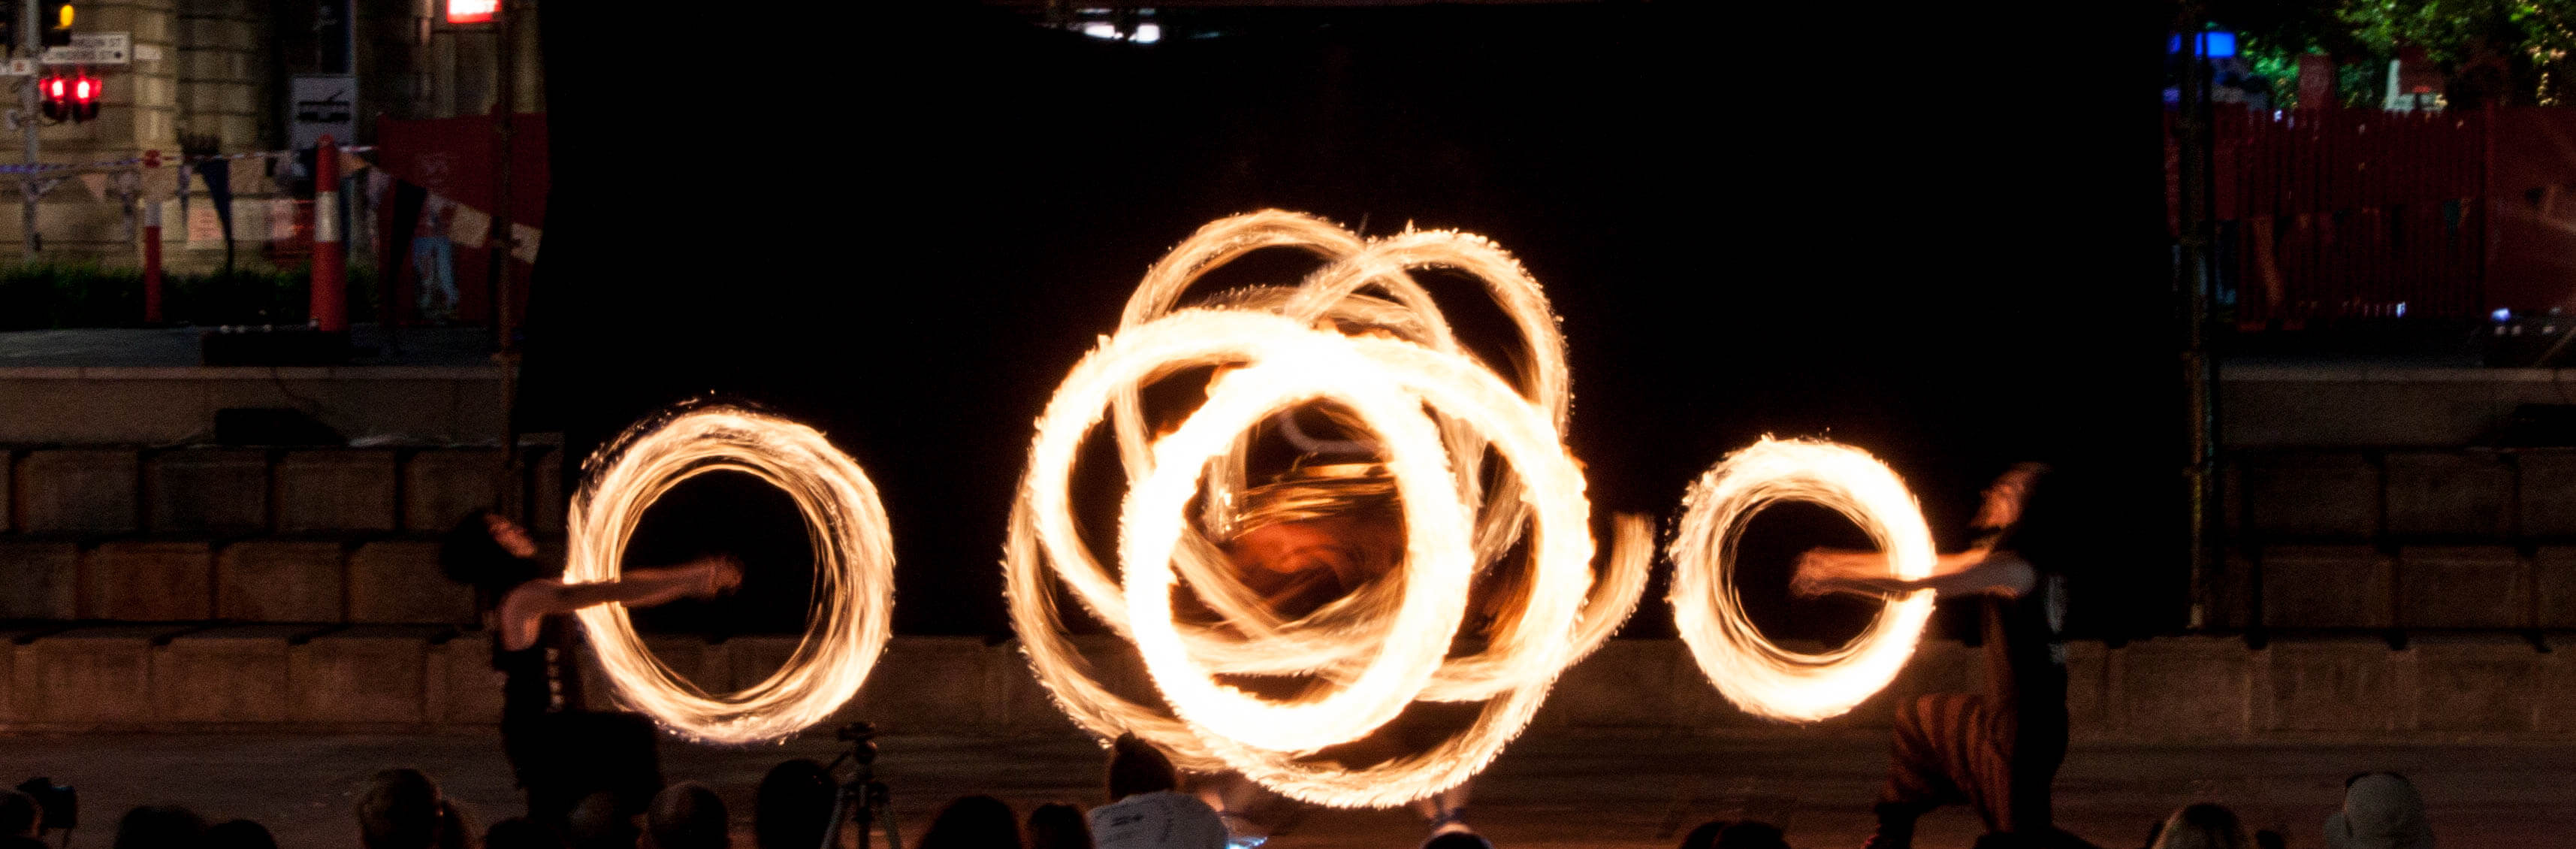 fire shows with multiple fire dancers